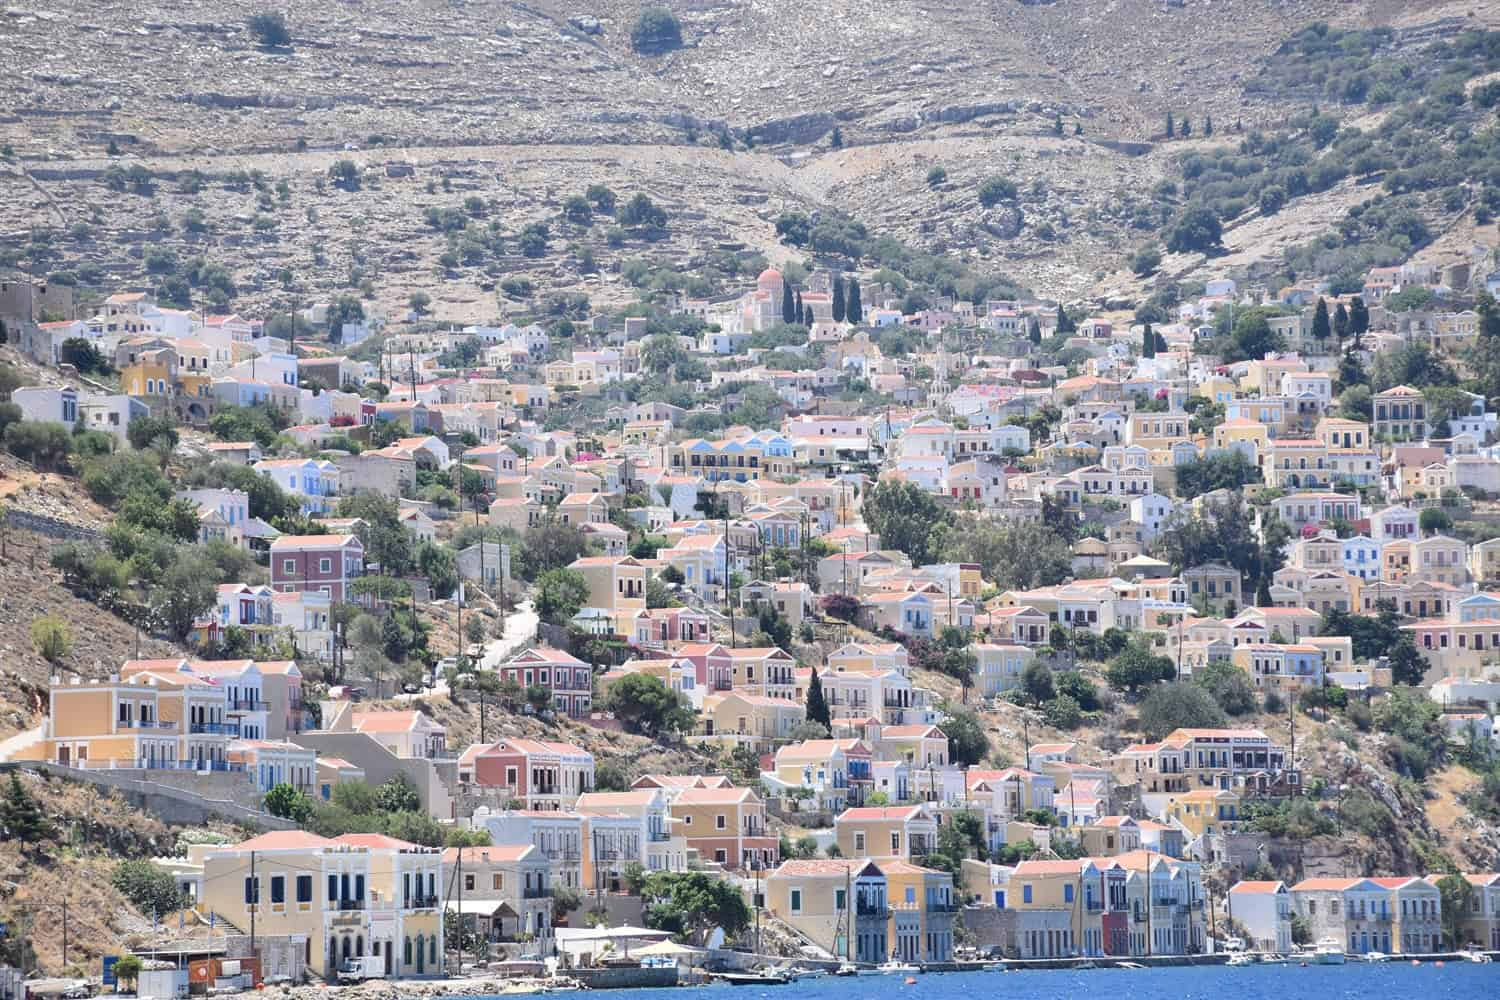 Boat Cruise in Symi Island